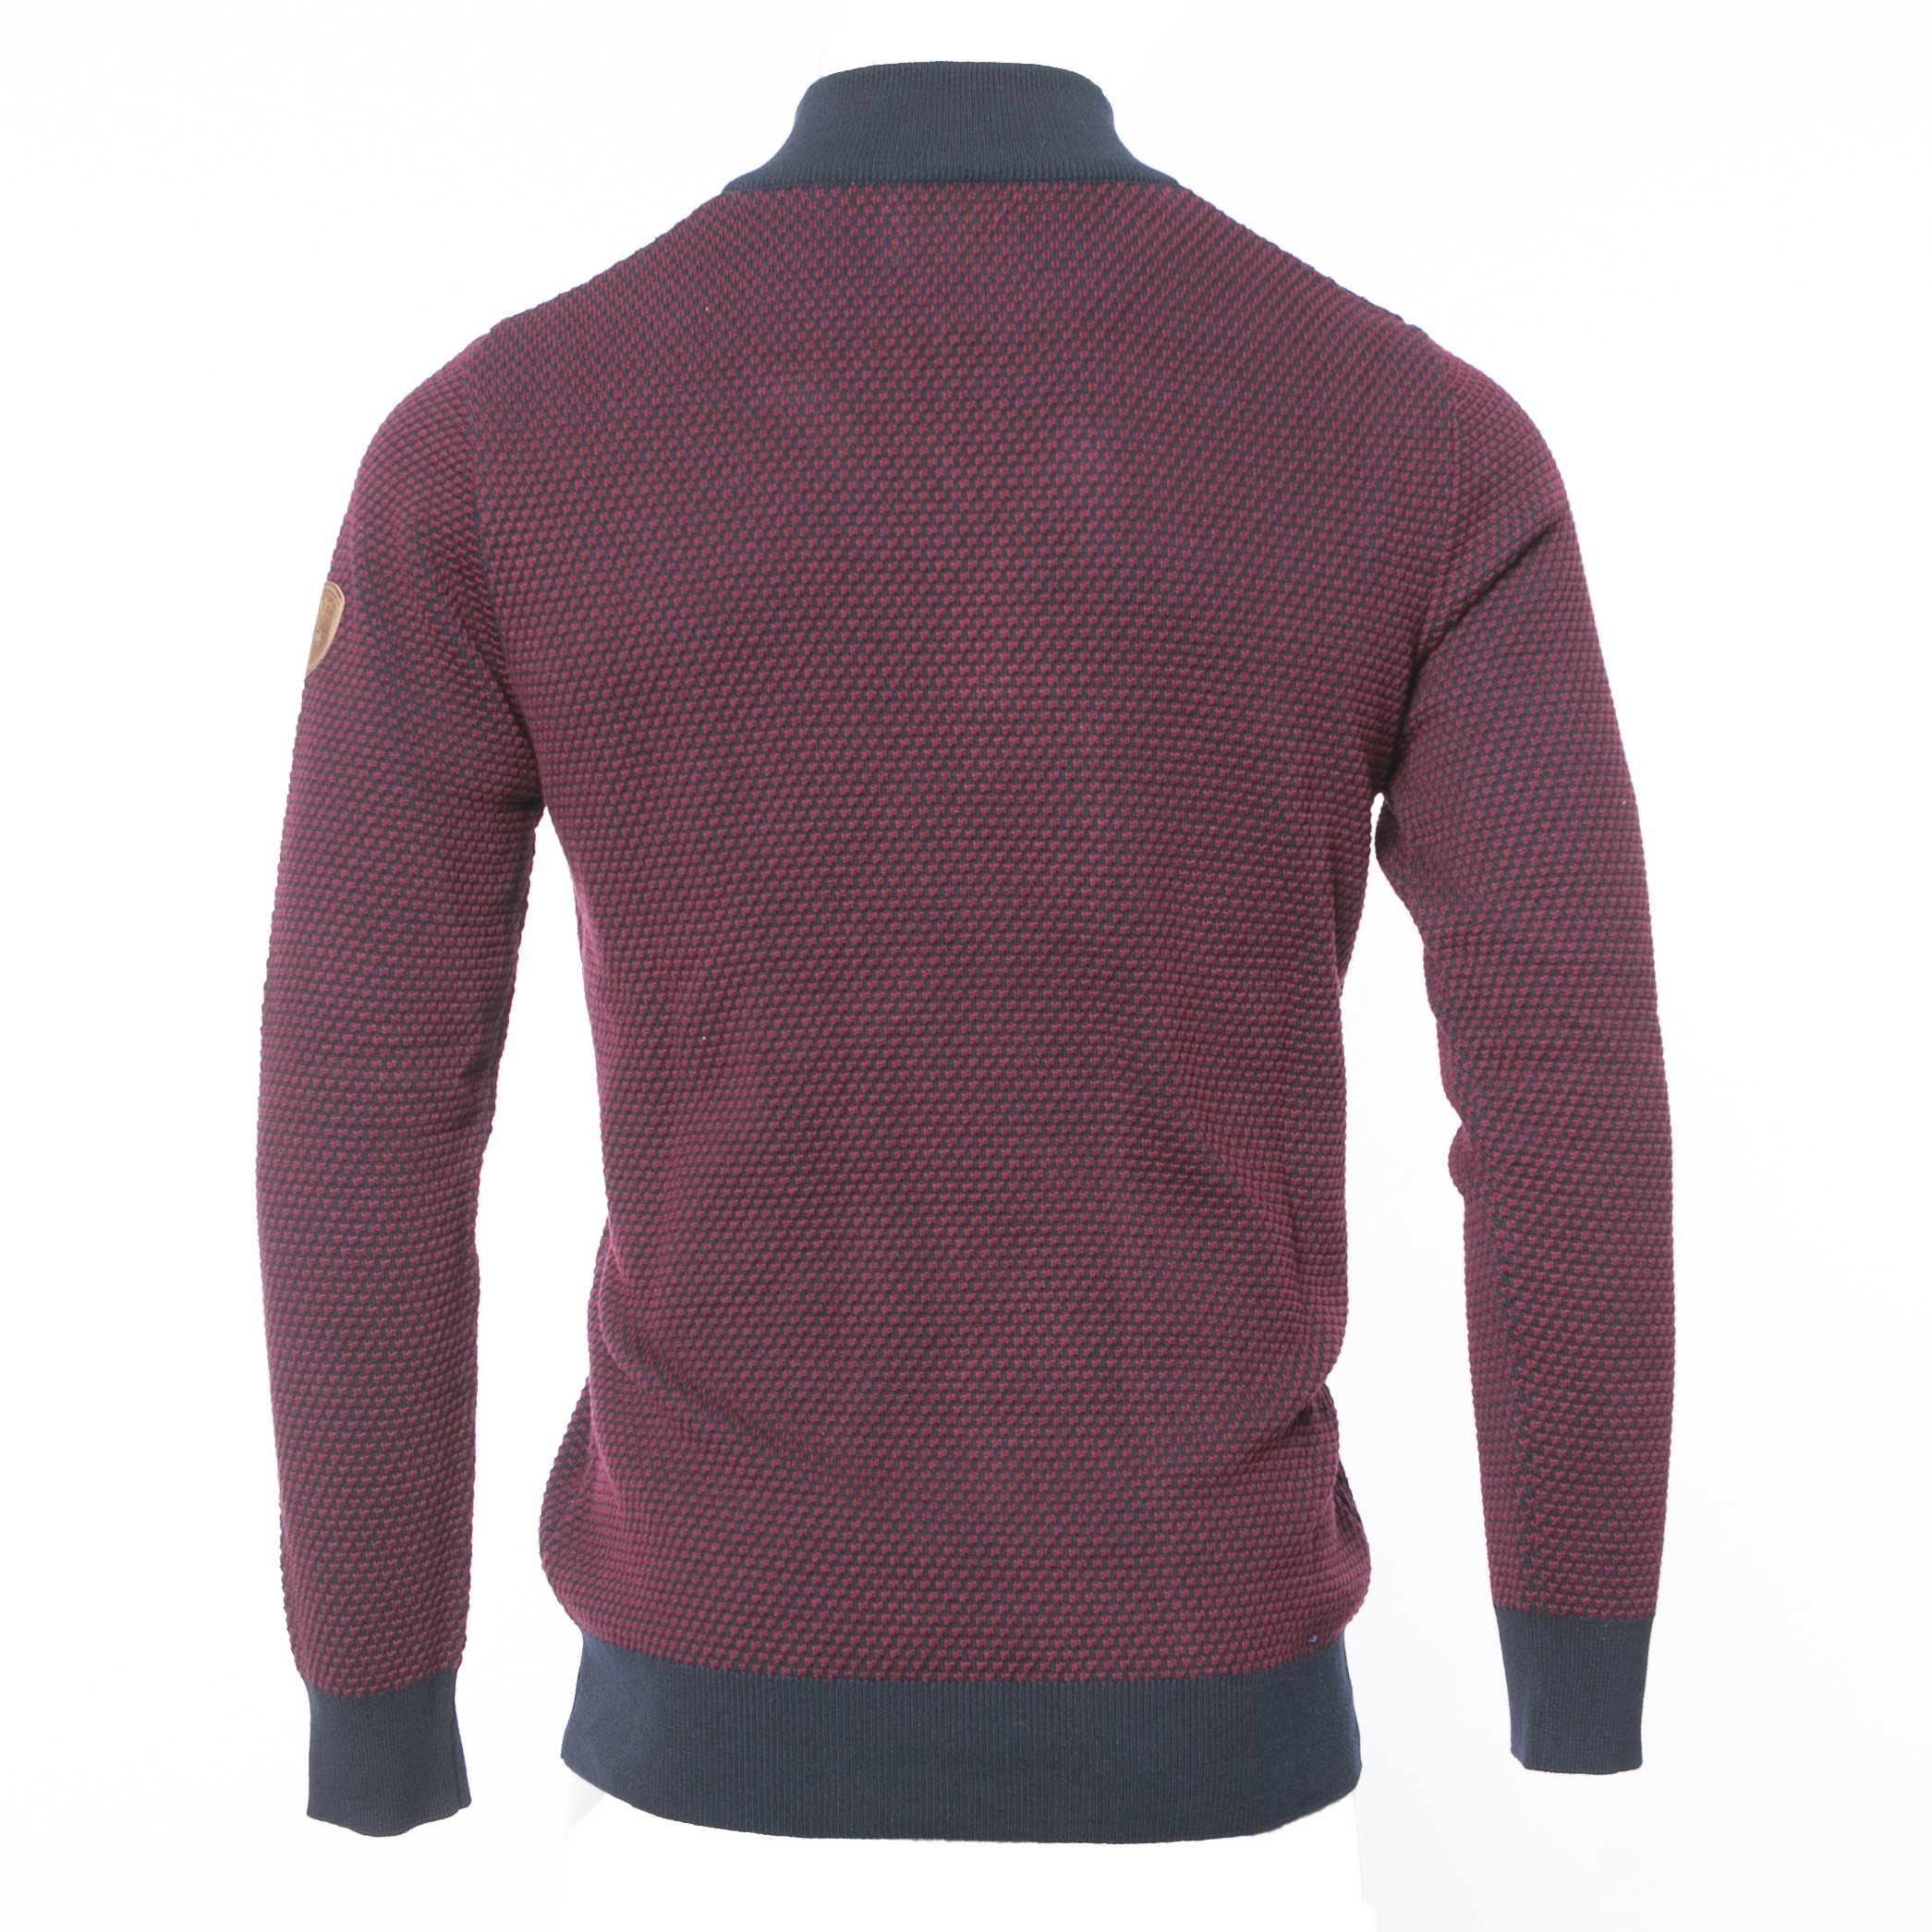 PEGASIN NAVY/BURGUNDY HALF ZIP KNITWEAR